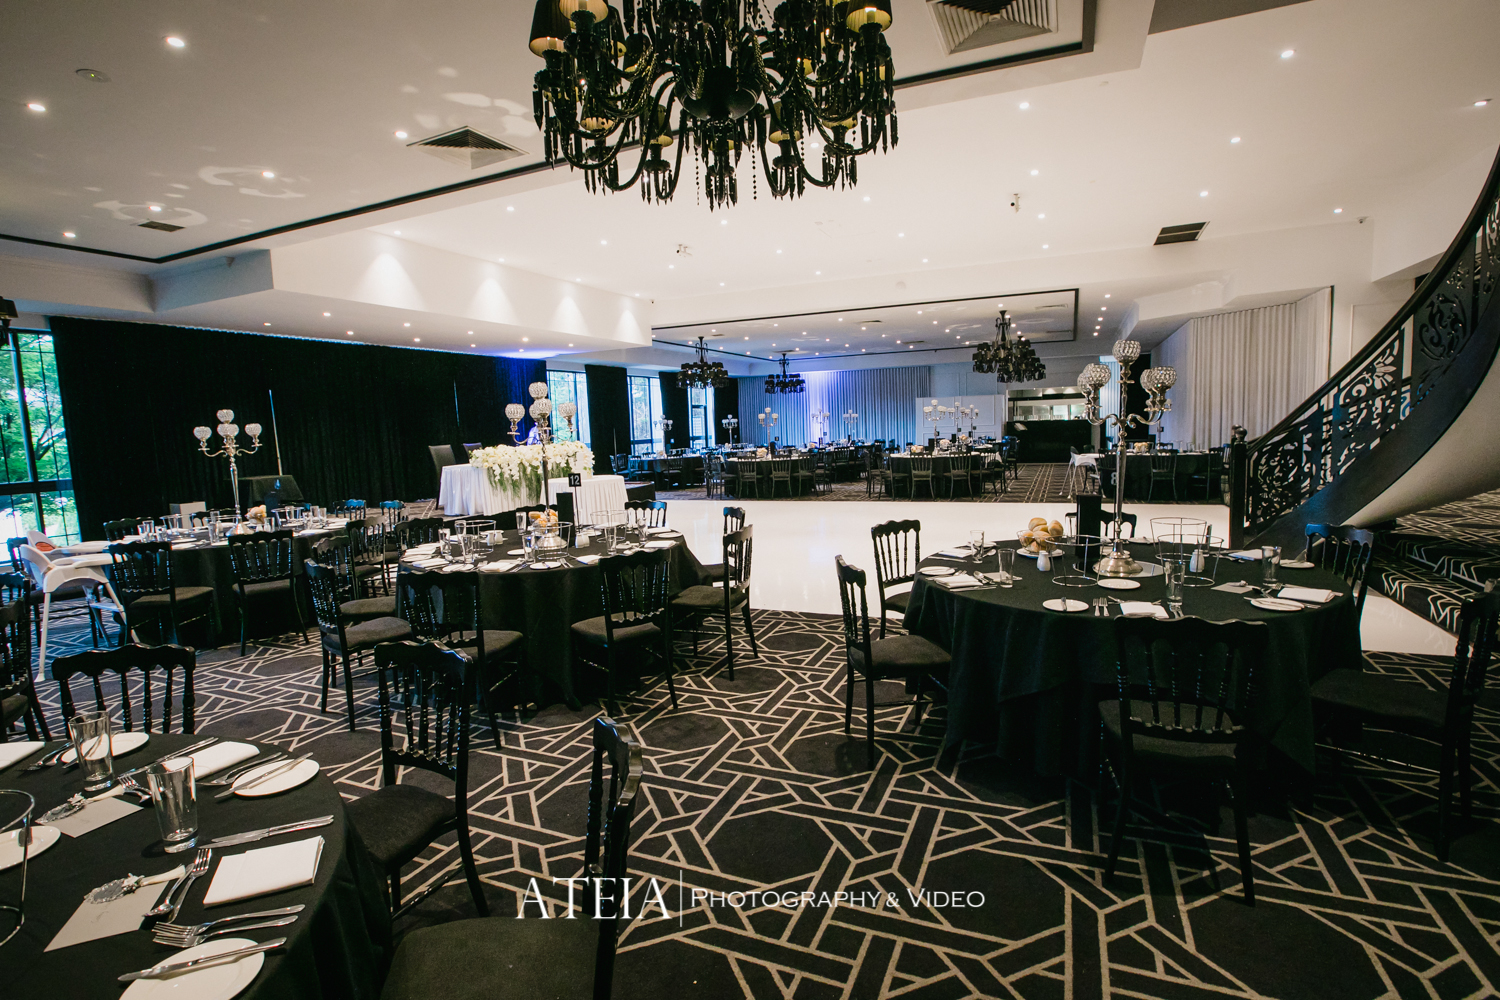 , Lakeside Receptions Wedding Photography by ATEIA Photography & Video